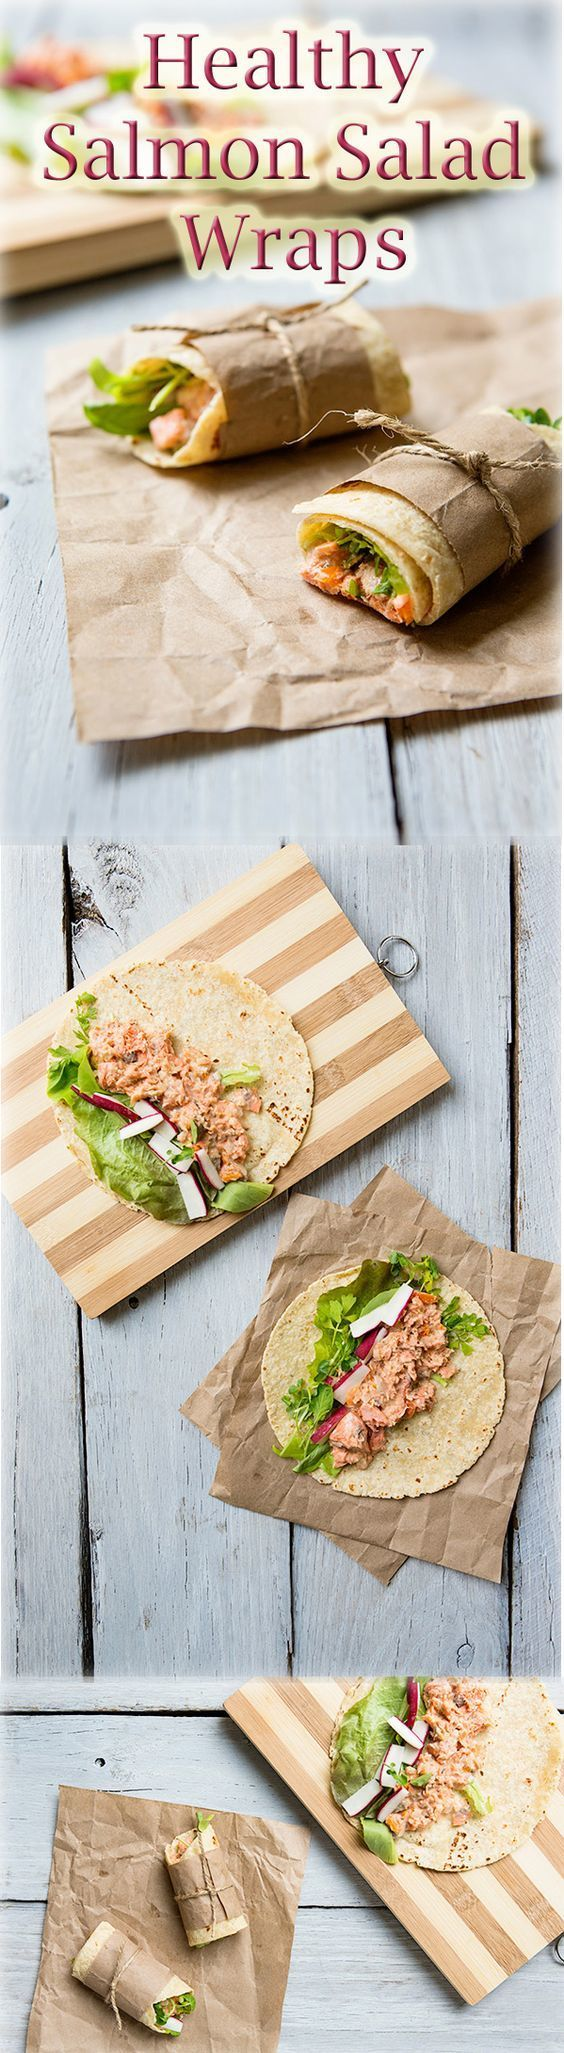 Salmon Salad Wraps.  Pin now, try later!